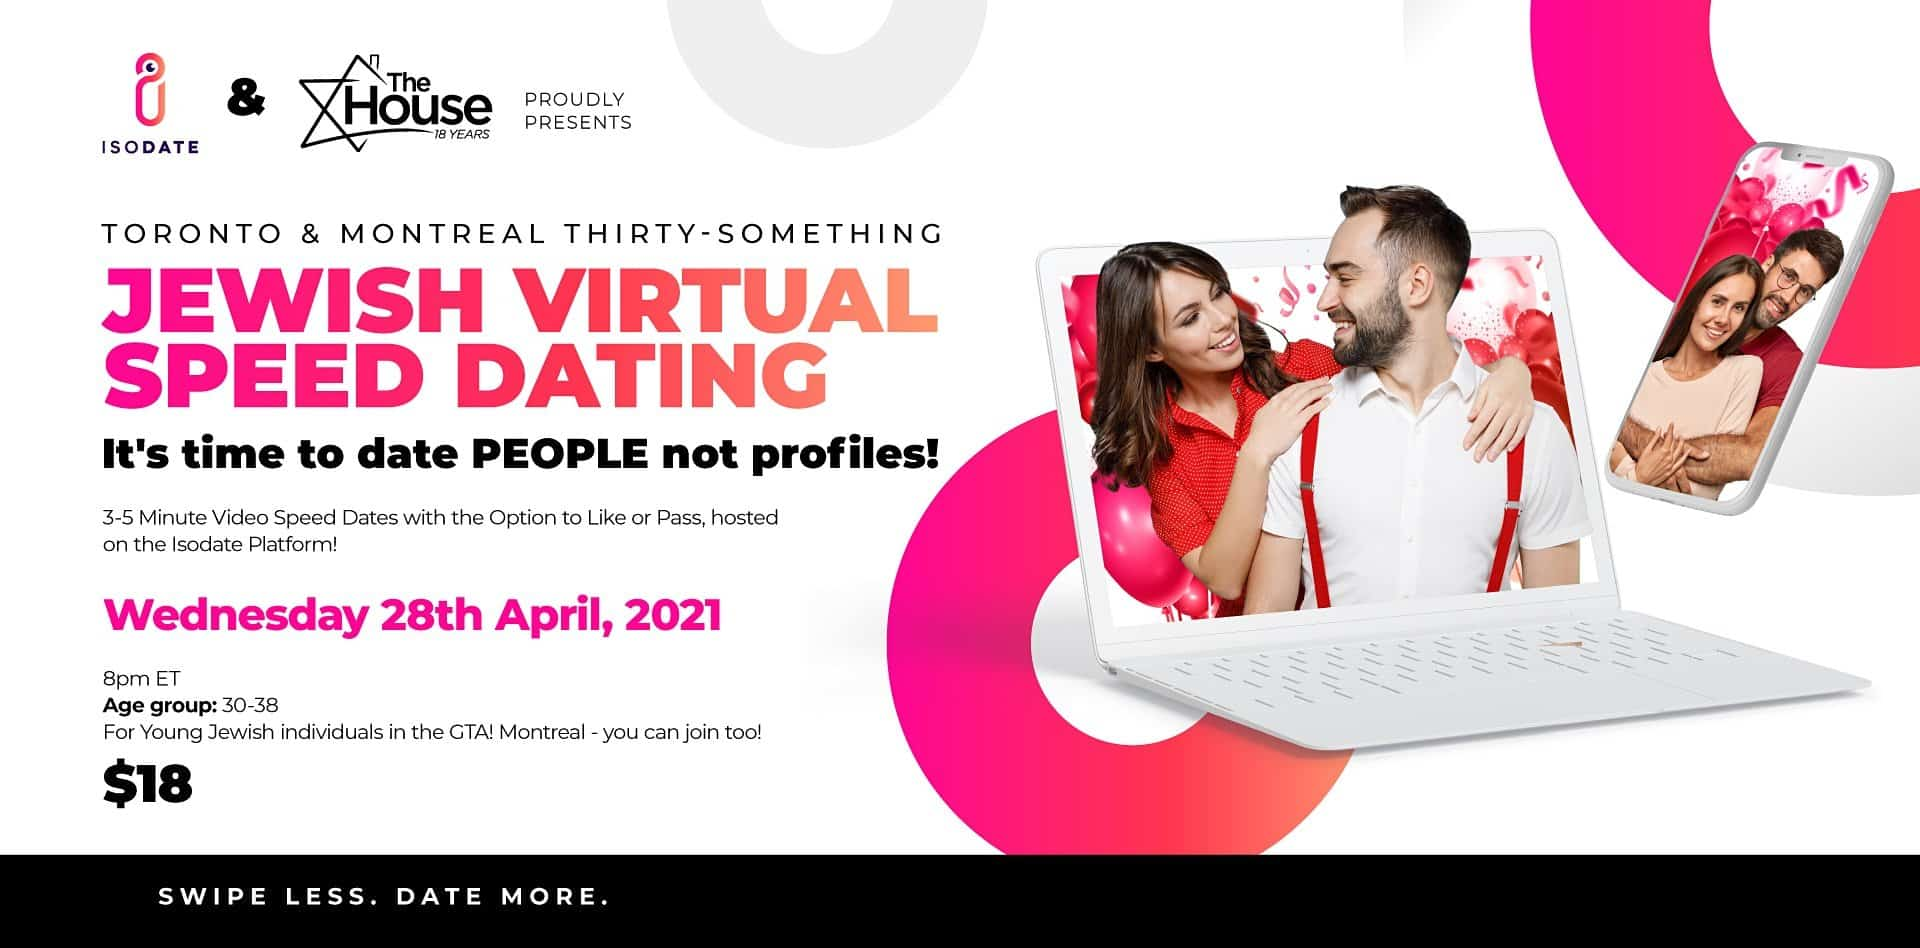 Isodate & The House present: Thirty Somethings Jewish Virtual Speed Dating